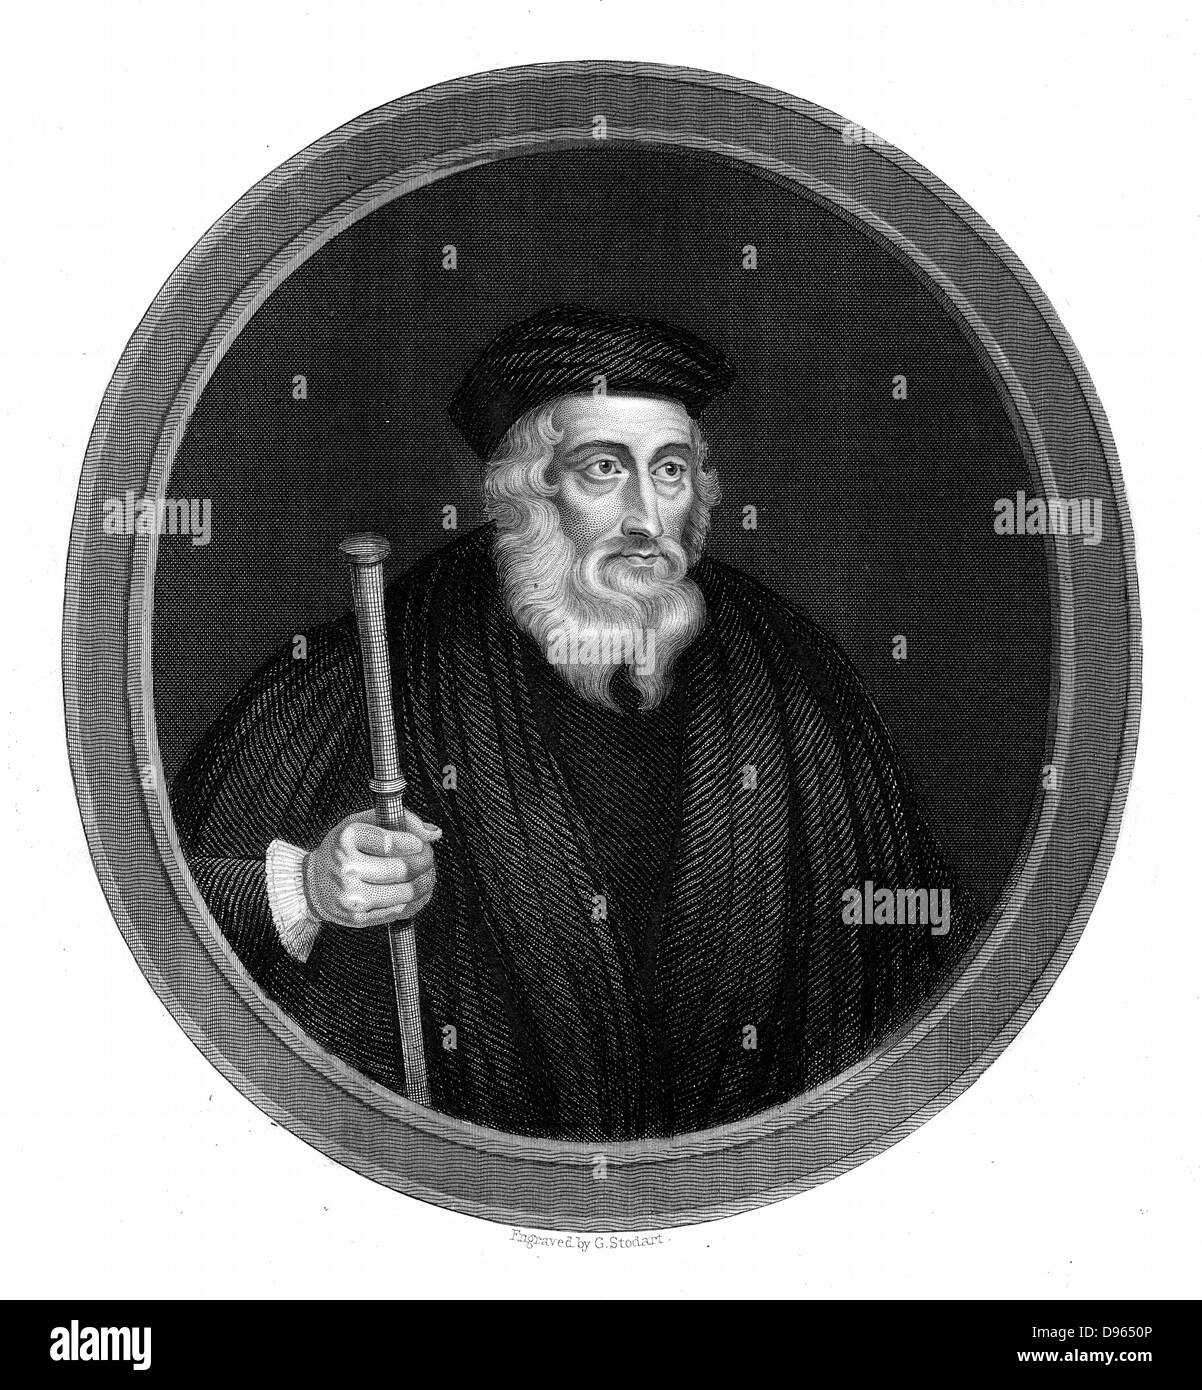 John Wycliffe (c13291384) English religious reformer.  Leader of the Lollards (Mumblers).  Questioned doctrine of - Stock Image